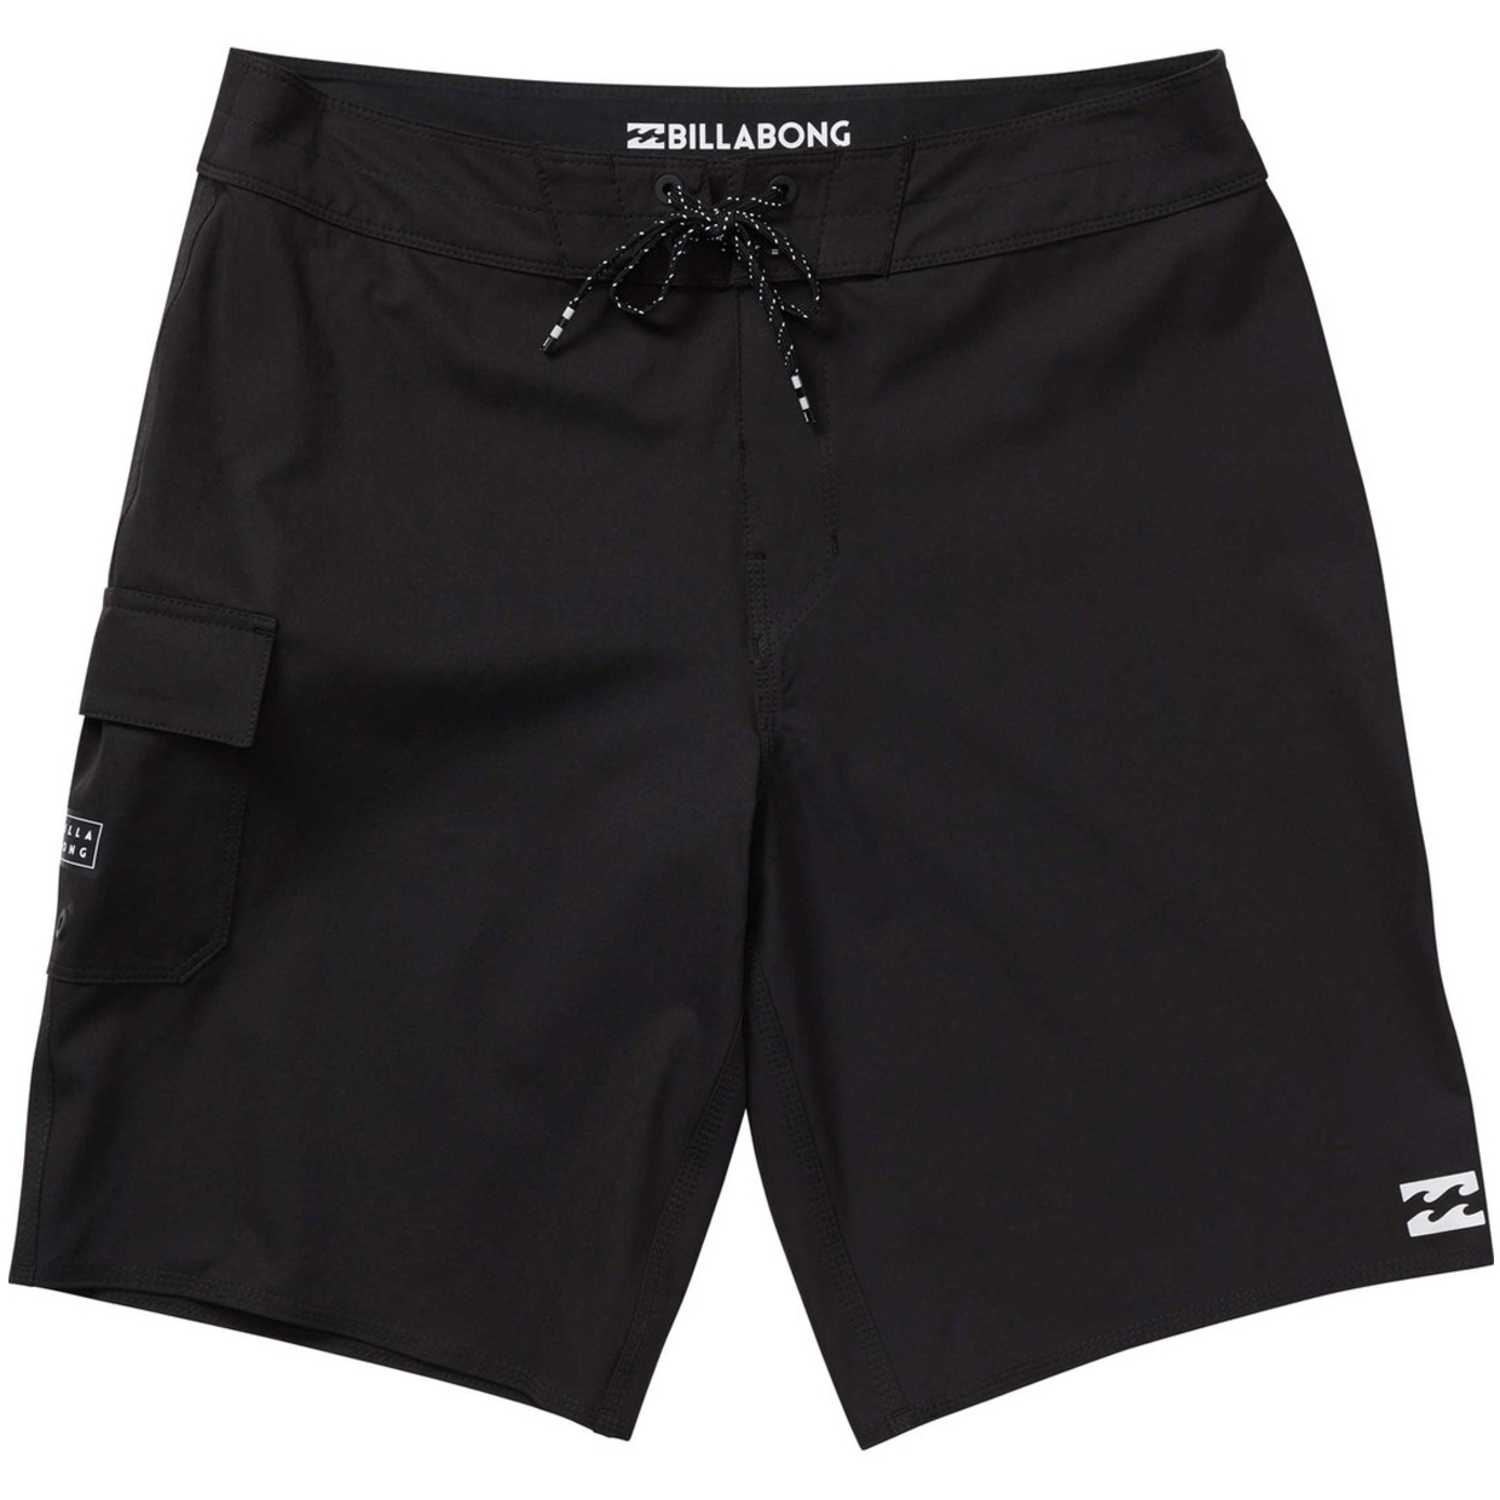 Short de Hombre Billabong Negro all day x